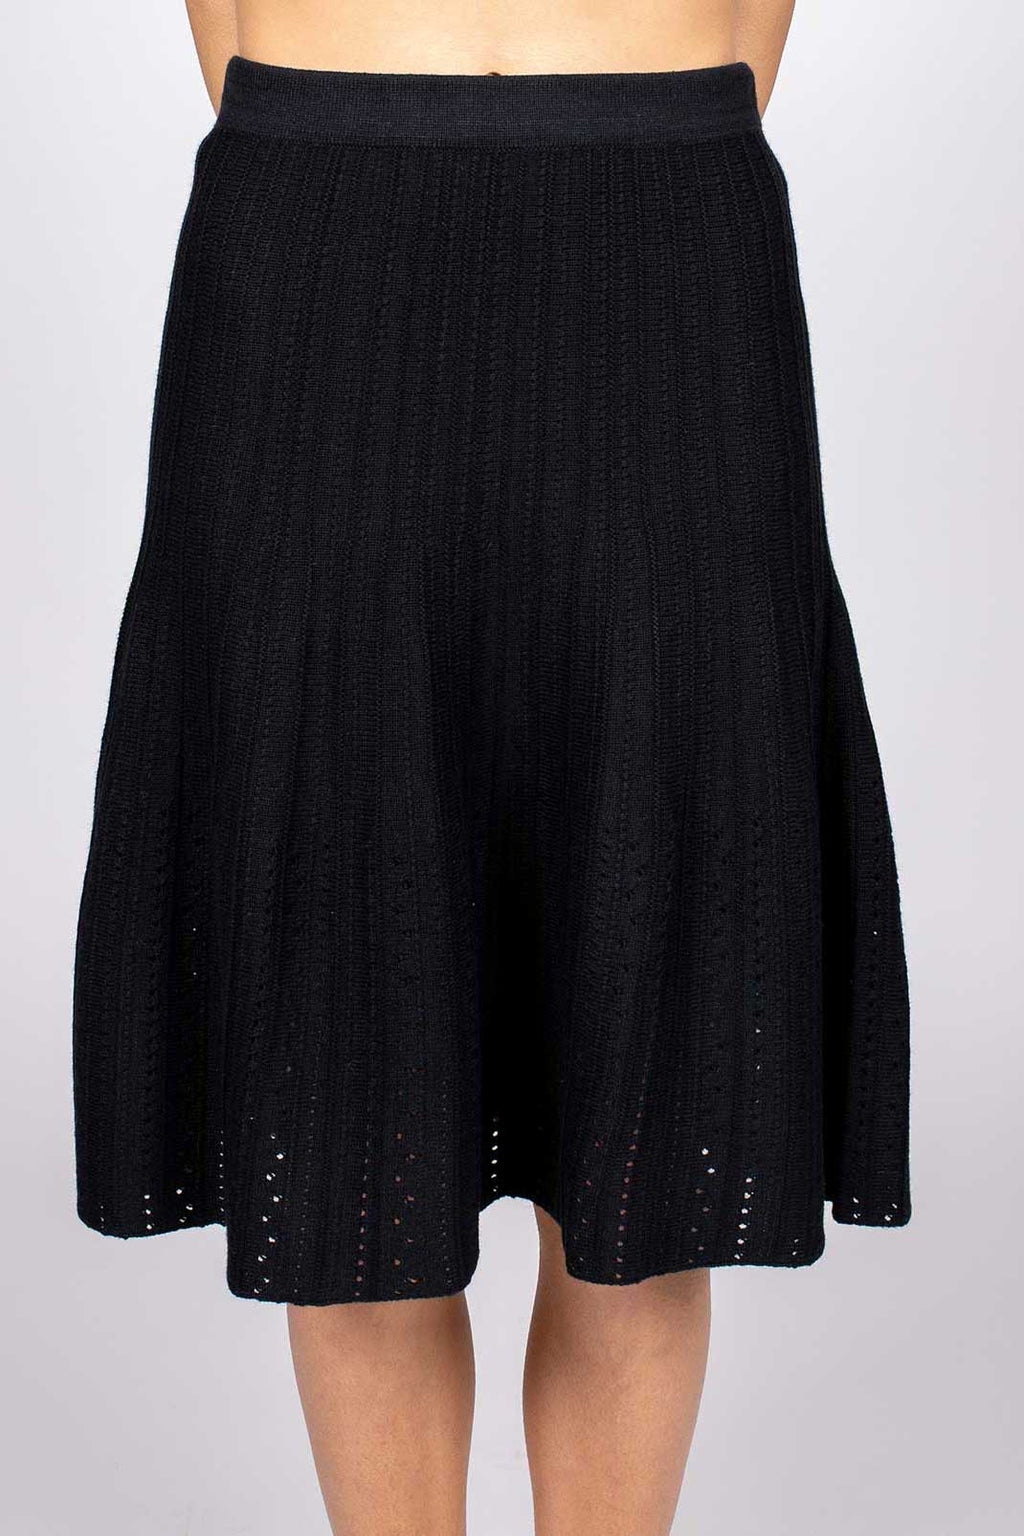 Ensenada Textured Cotton Skirt